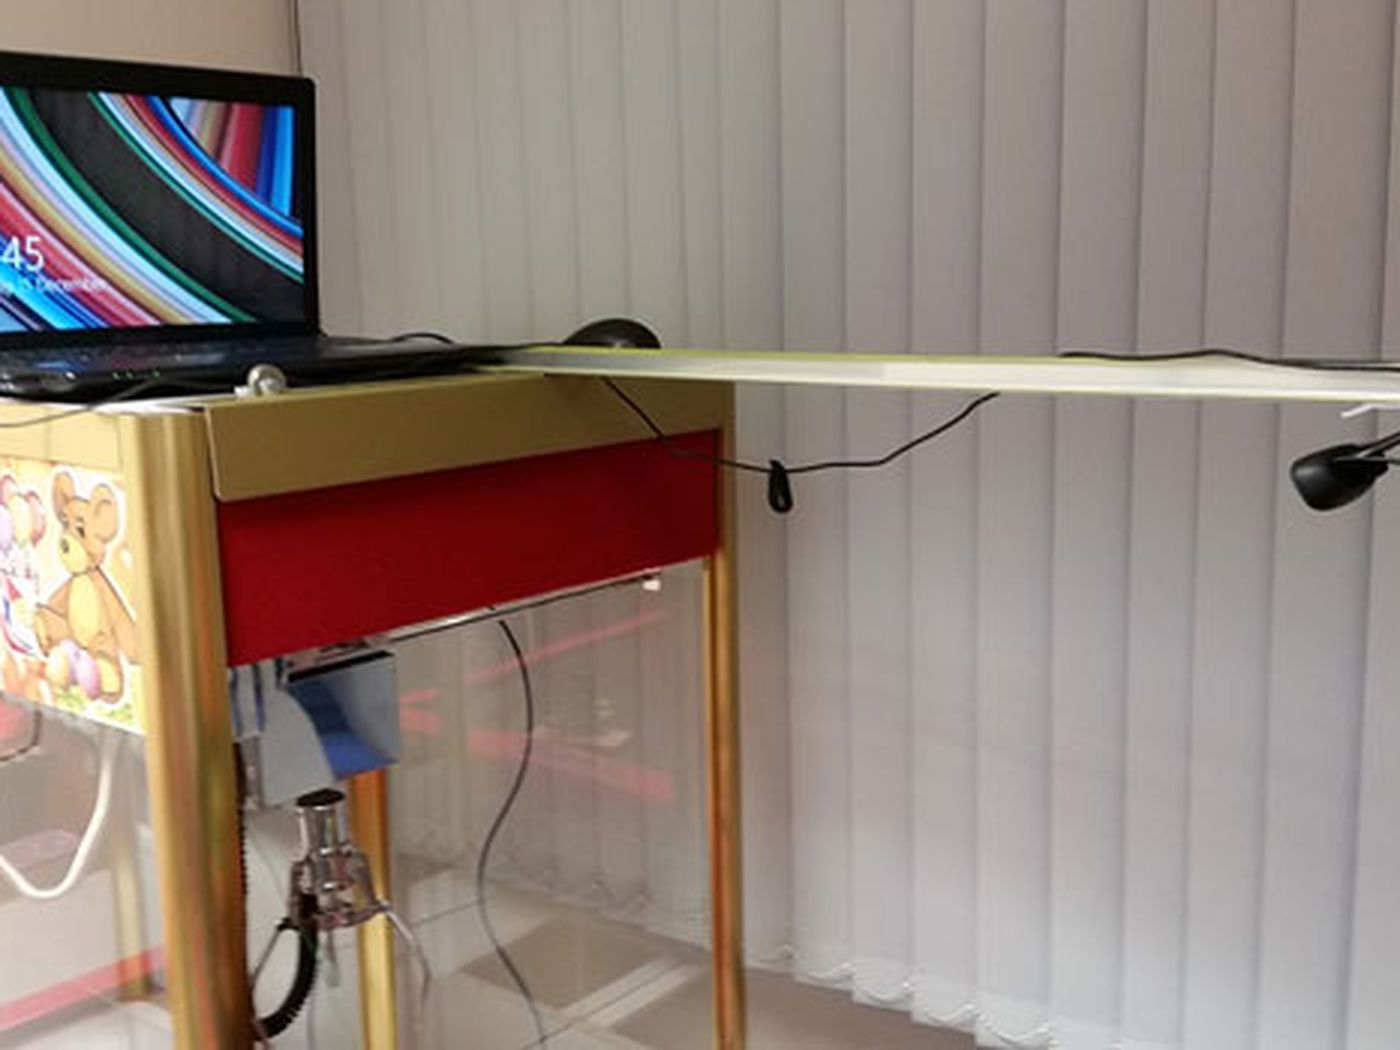 This crane machine is hooked up to a Raspberry Pi so you can play it